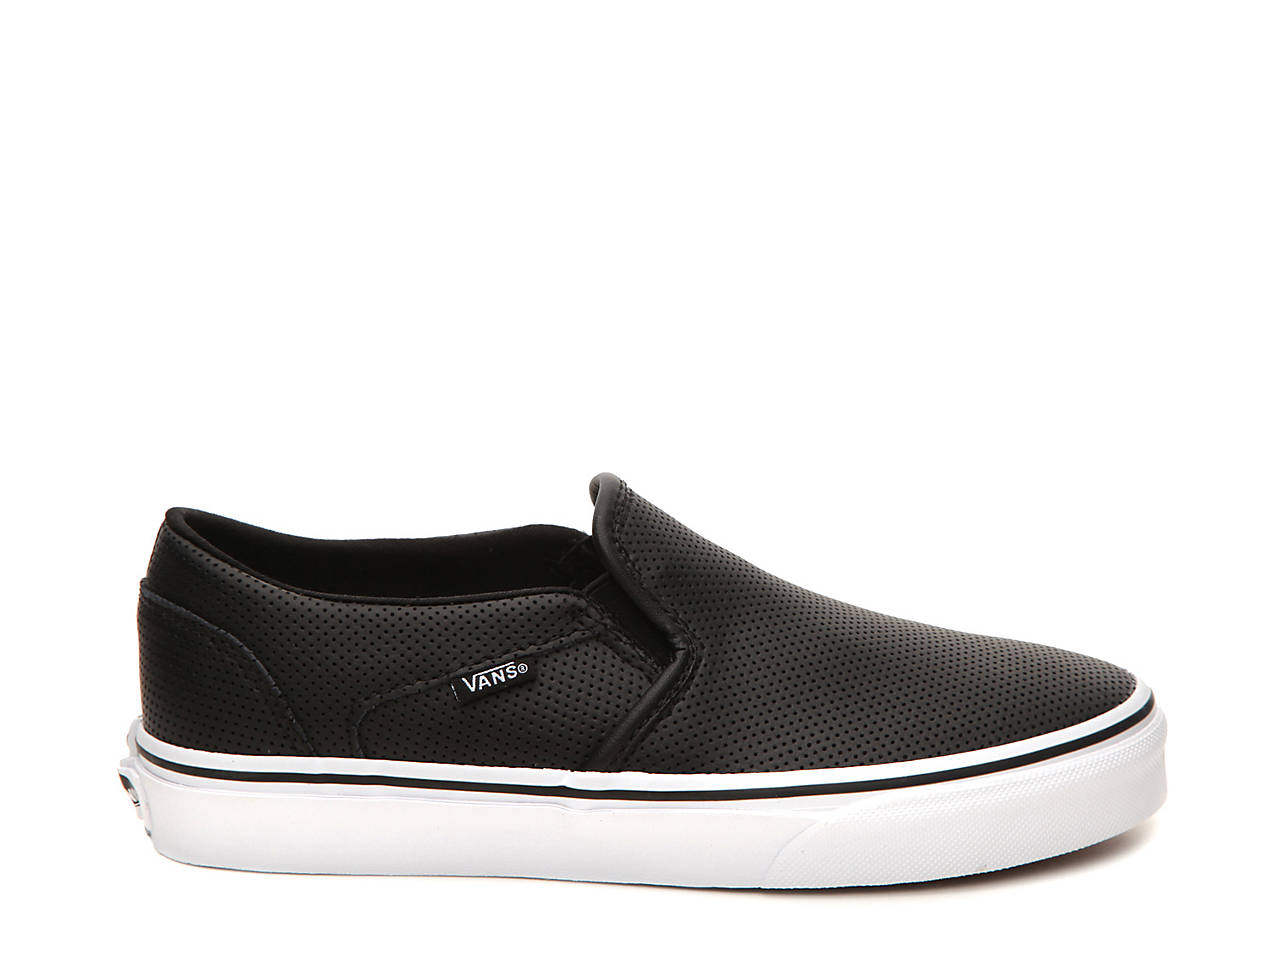 Vans Asher Perforated Slip-On Sneaker - Women s Women s Shoes  d93bf039a